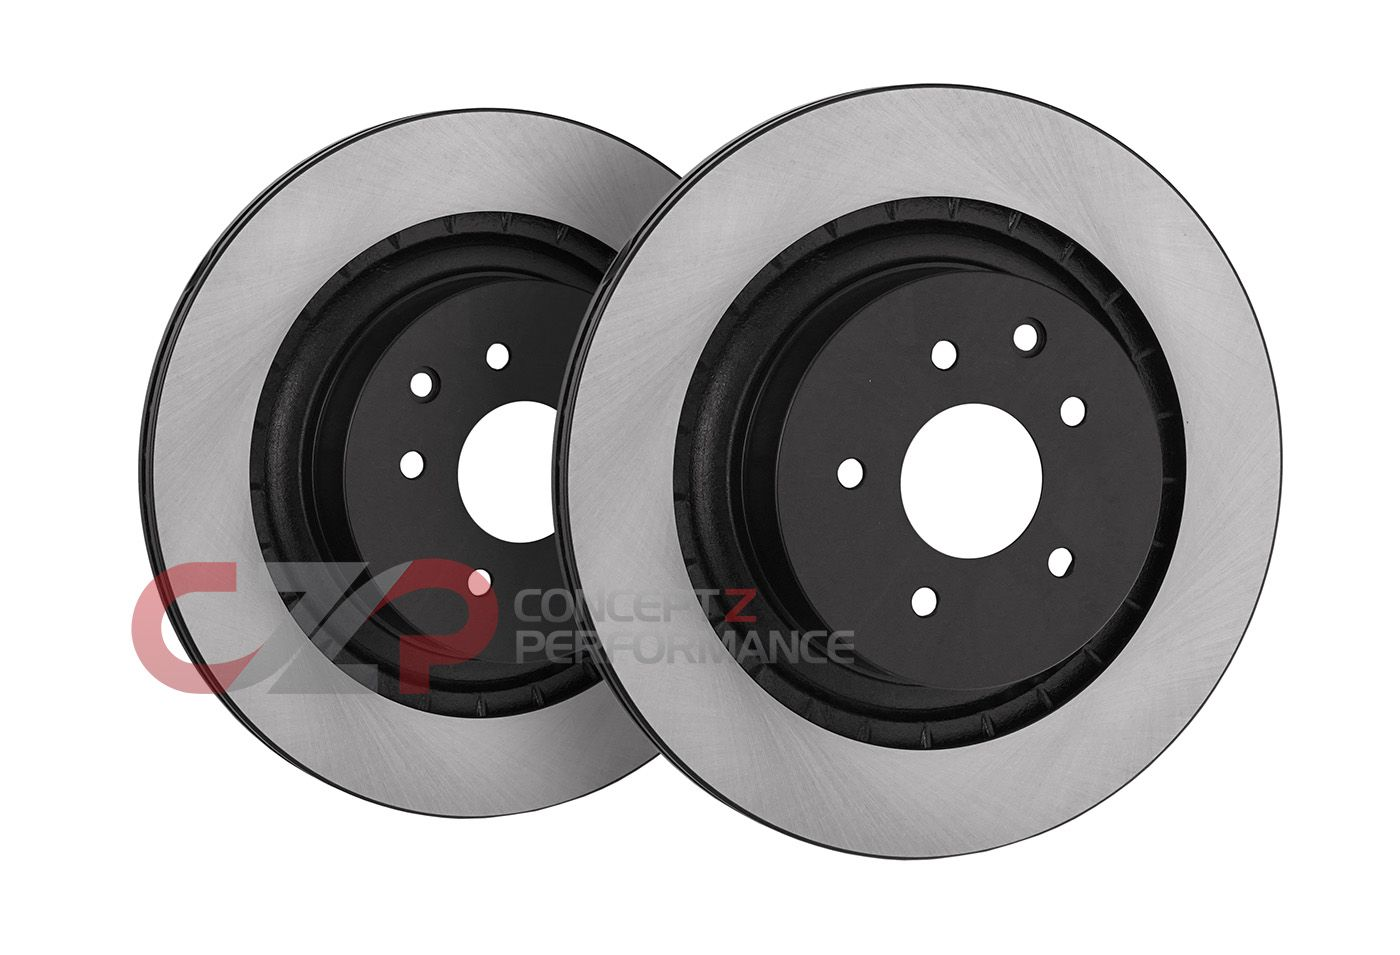 Max Brakes Premium OE Rotors with Carbon Ceramic Pads KT171643 Front + Rear